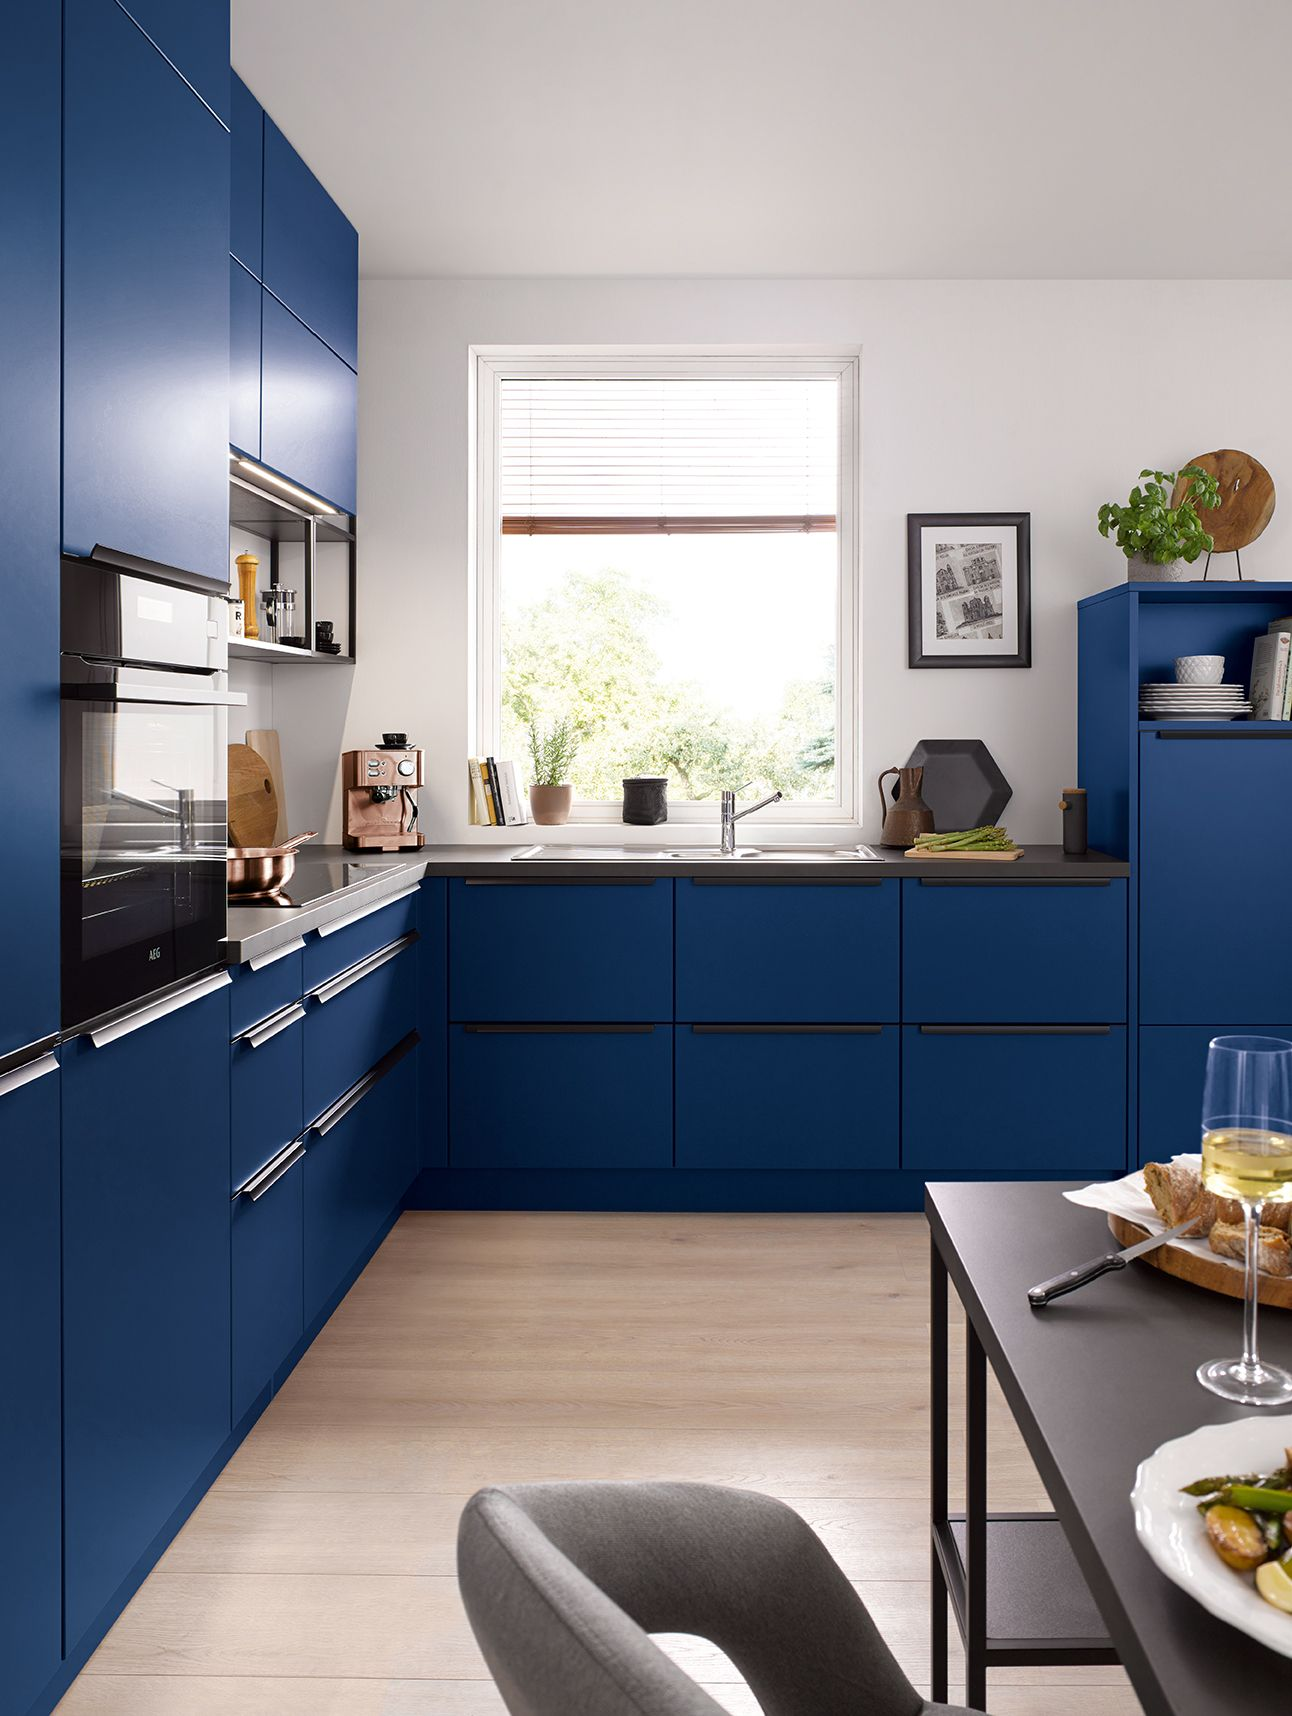 beautiful blue kitchen cabinets in a matte finish modern kitchen design modern kitchen on kitchen cabinets blue id=46132